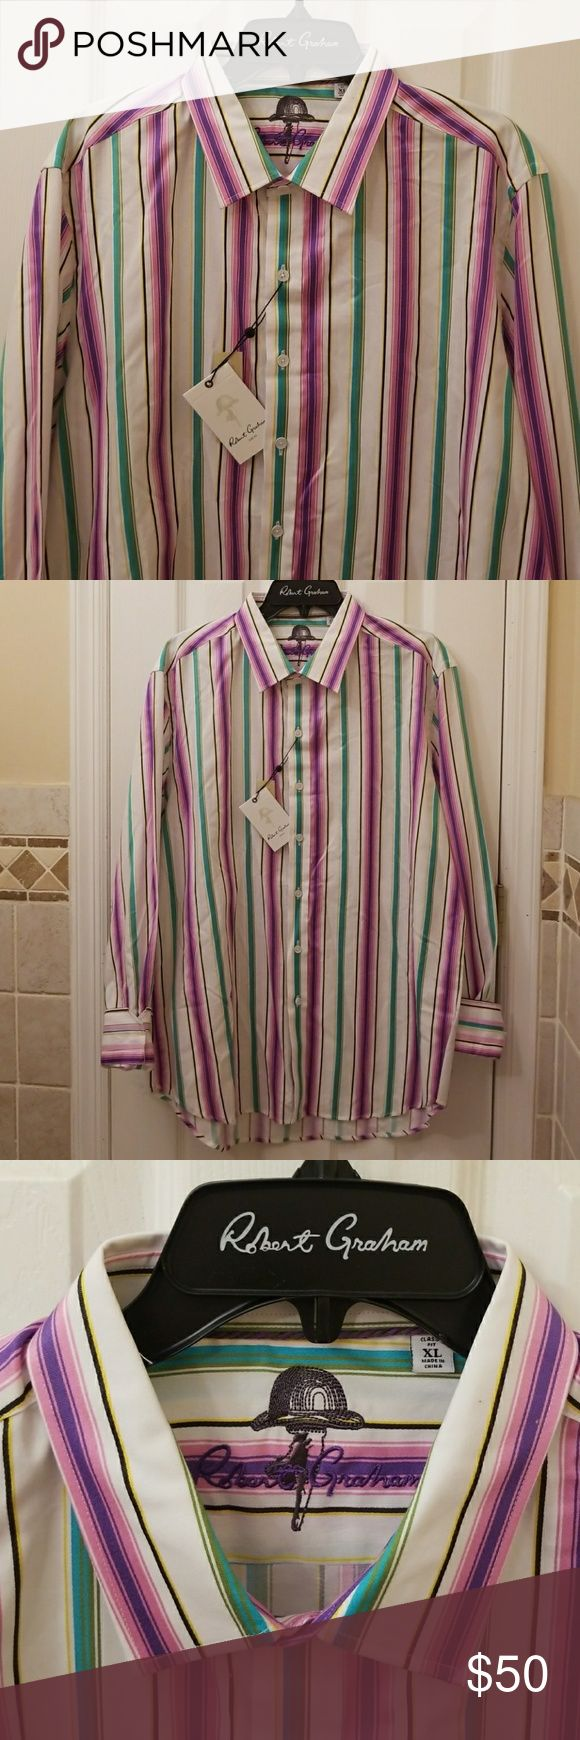 Robert Graham button down size XL Robert Graham button down shirt size XL - beautiful colors , stripe pattern , pre owned, brand new, never used . Premium Robert Graham quality. Robert Graham Shirts